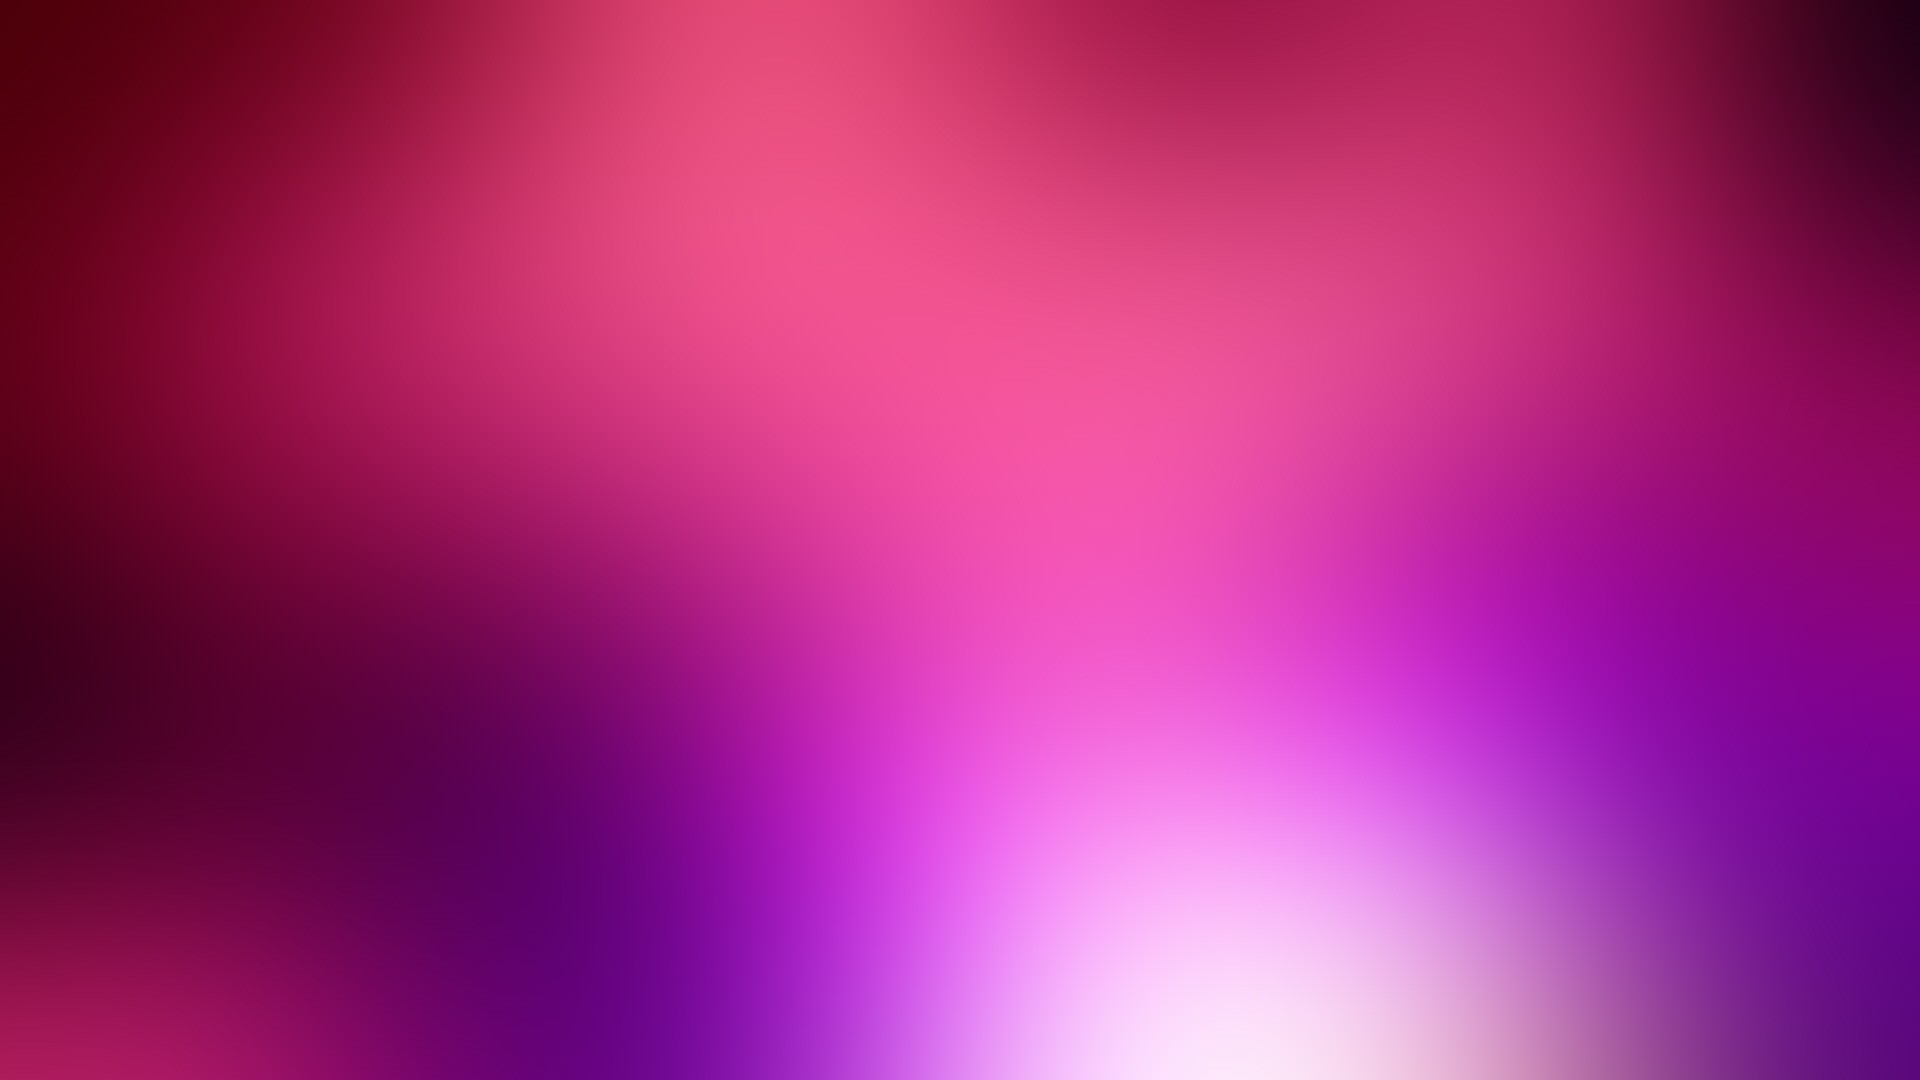 Wallpaper Pink, Purple, Light, Abstraction